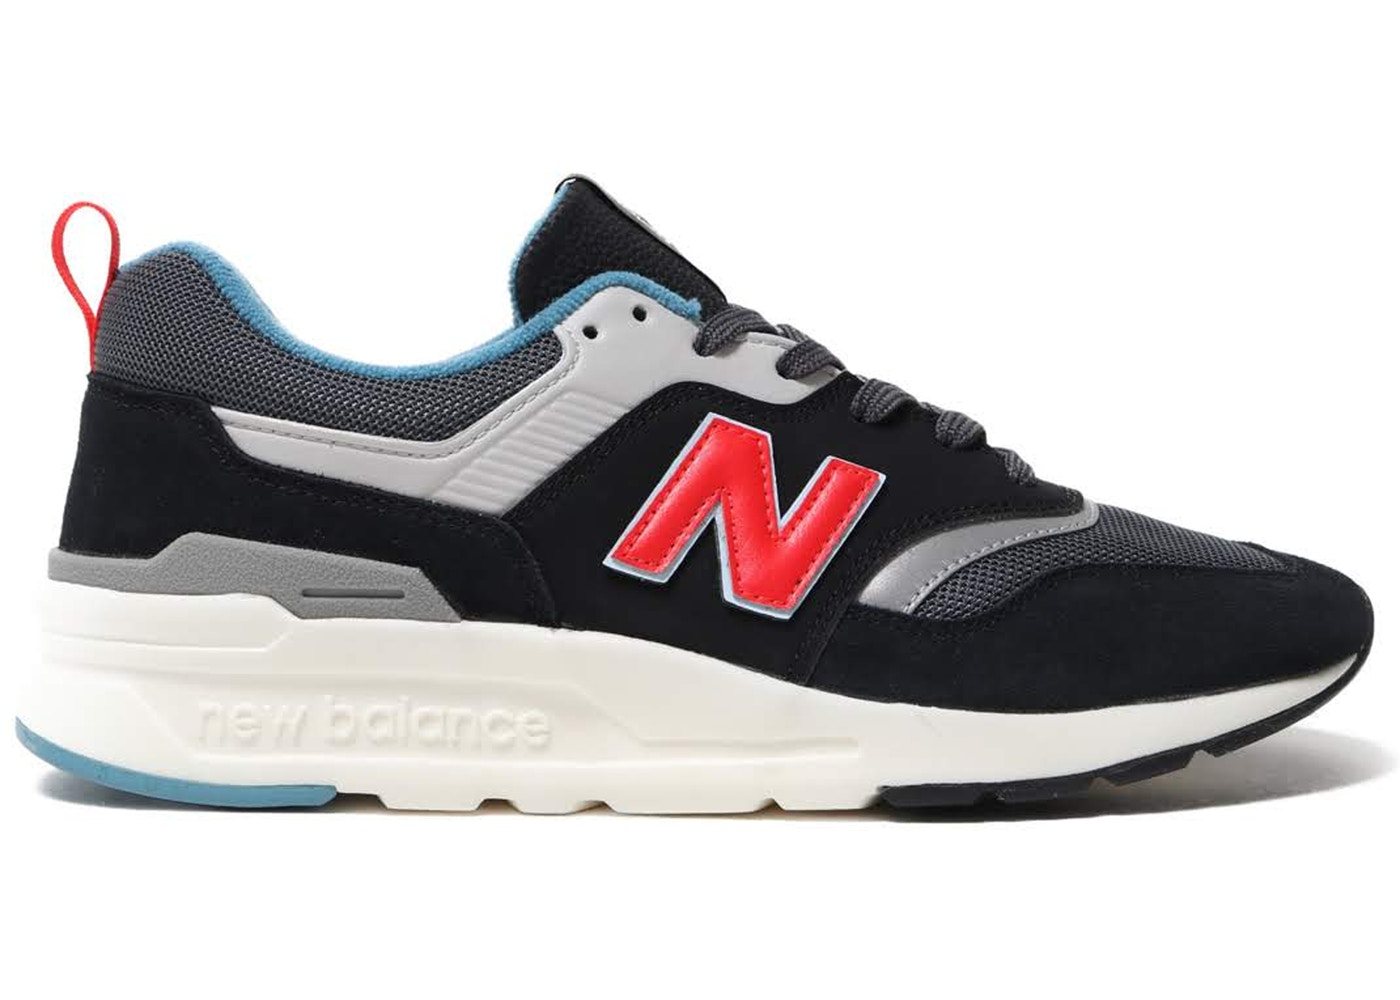 b1f0e80030 Buy New Balance Shoes & Deadstock Sneakers